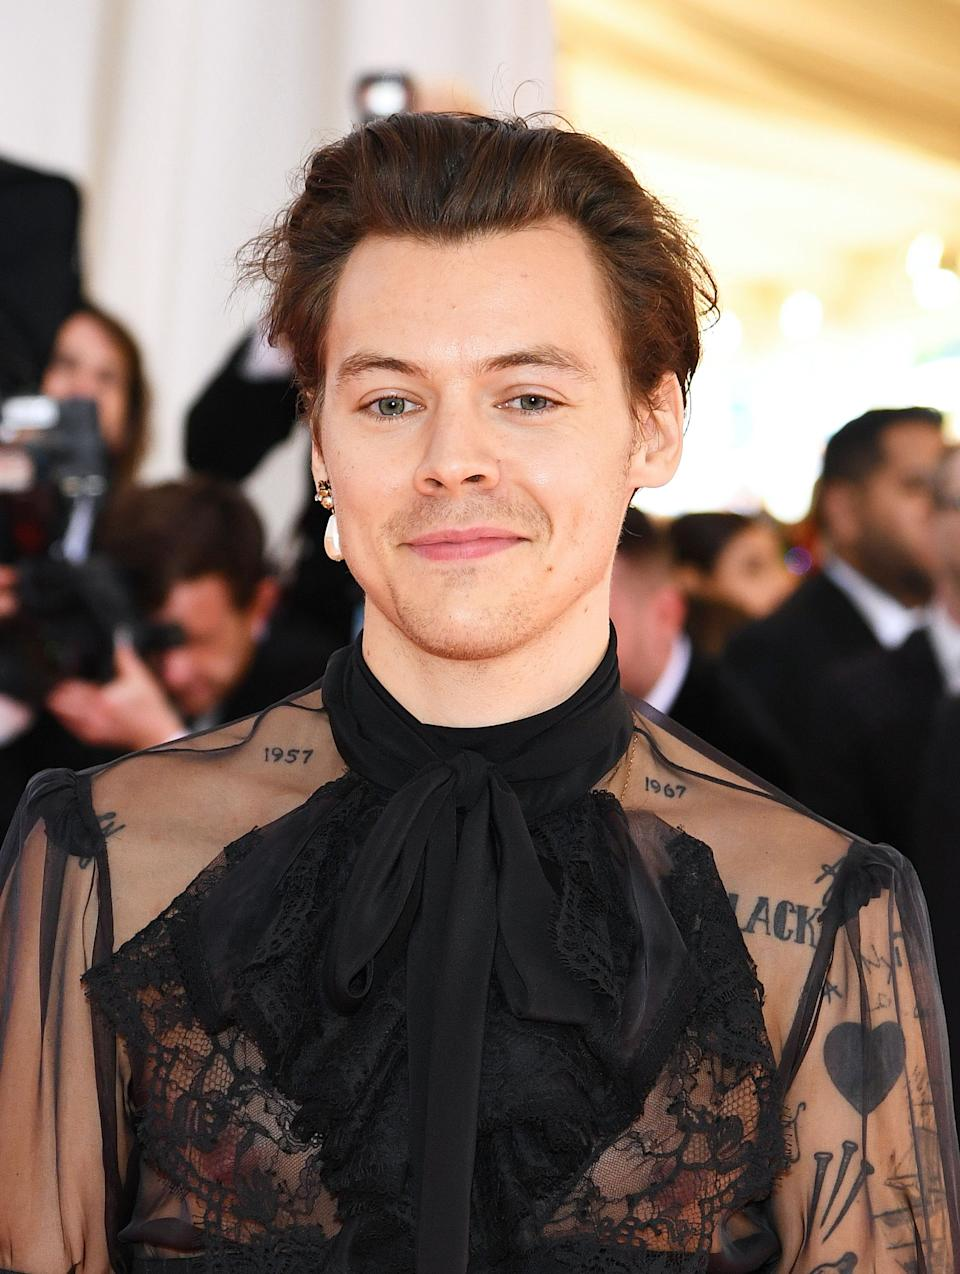 Harry Styles stuns on a red carpet show in black see-through blouse with a bow at the neck area